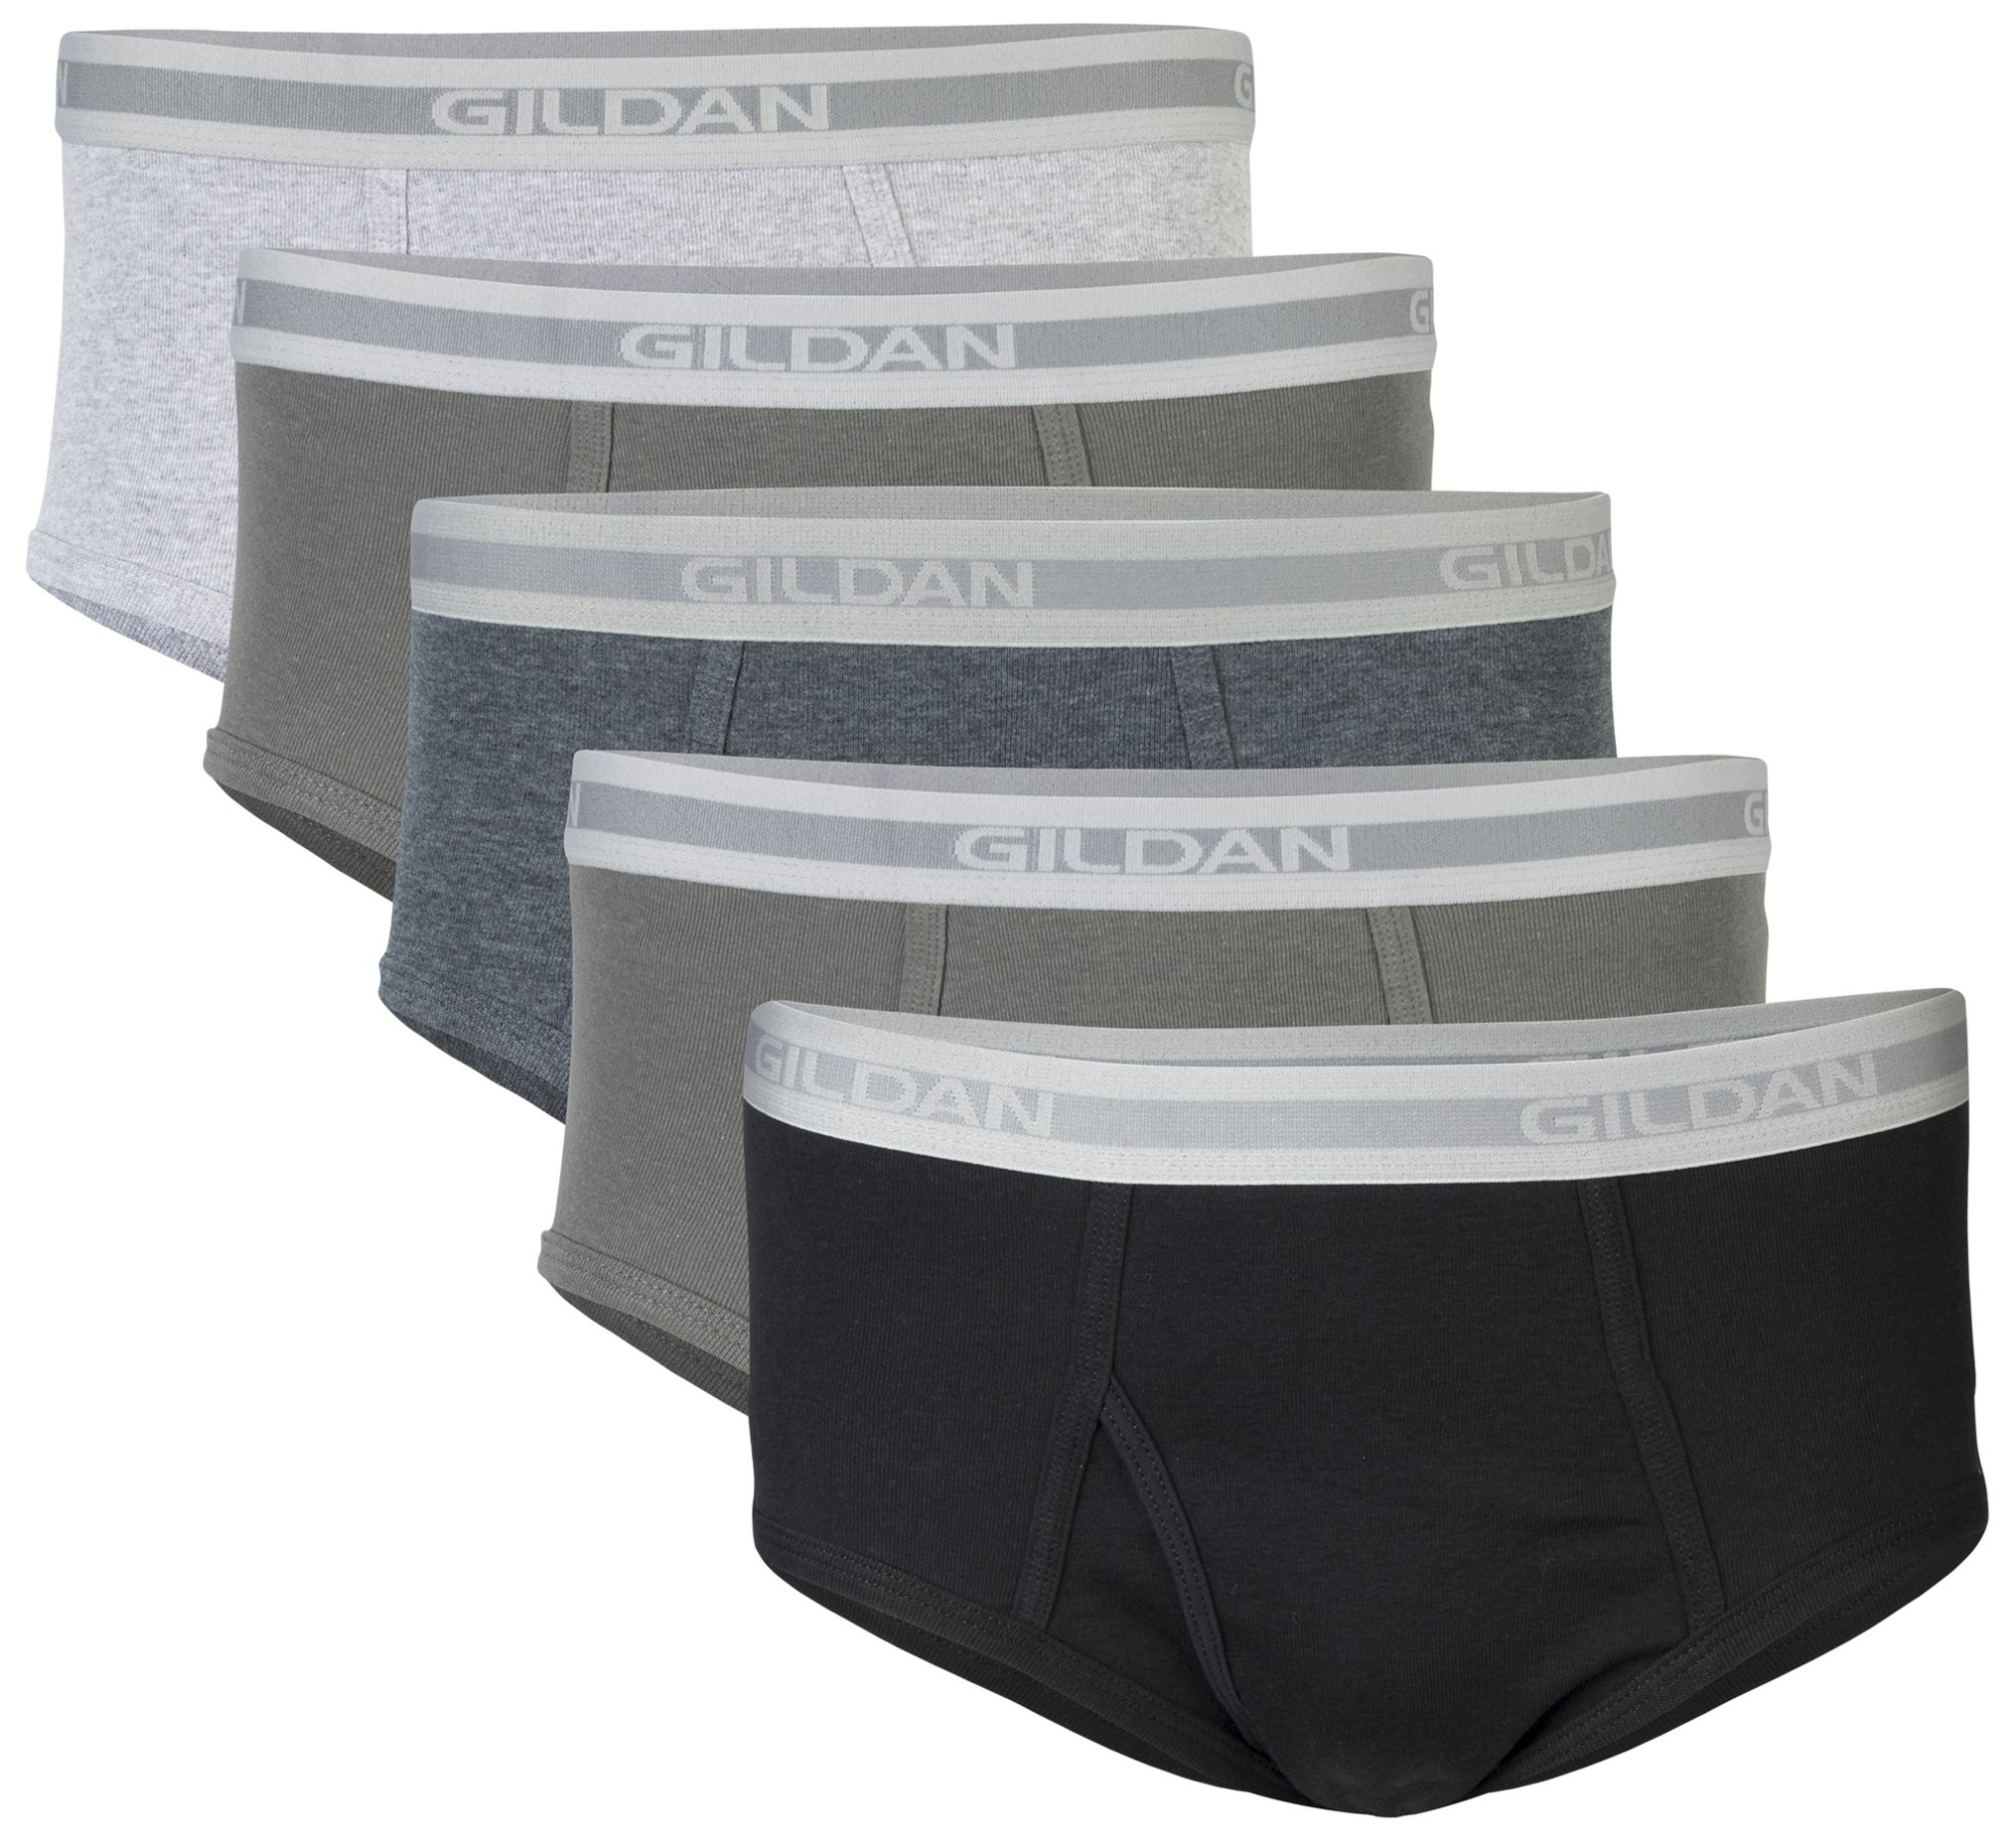 Gildan Men's Brief 6-Pack Underwear, Grey/Black, Medium by Gildan